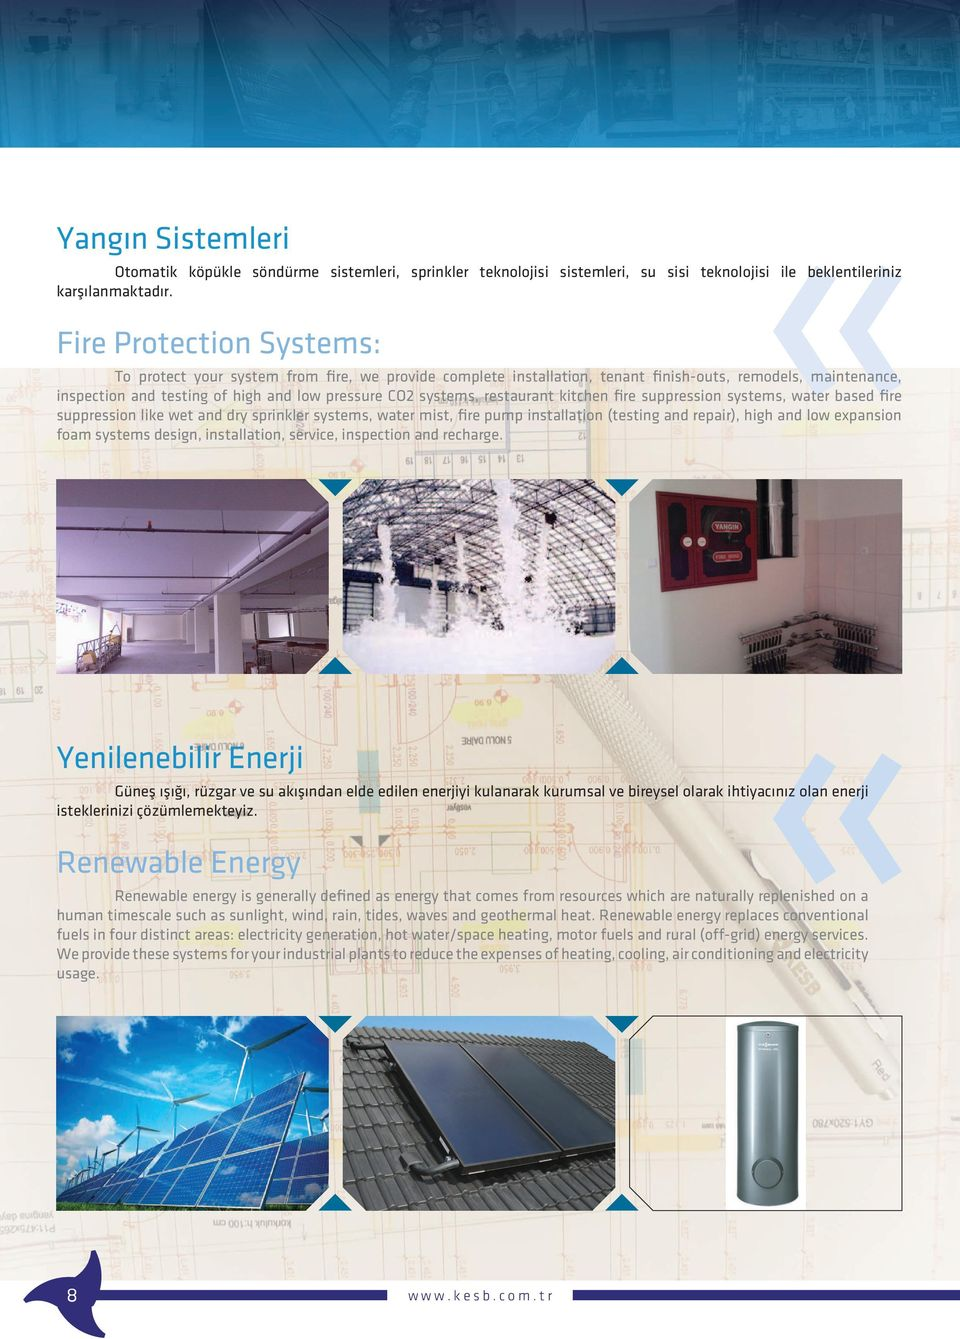 restaurant kitchen fire suppression systems, water based fire suppression like wet and dry sprinkler systems, water mist, fire pump installation (testing and repair), high and low expansion foam